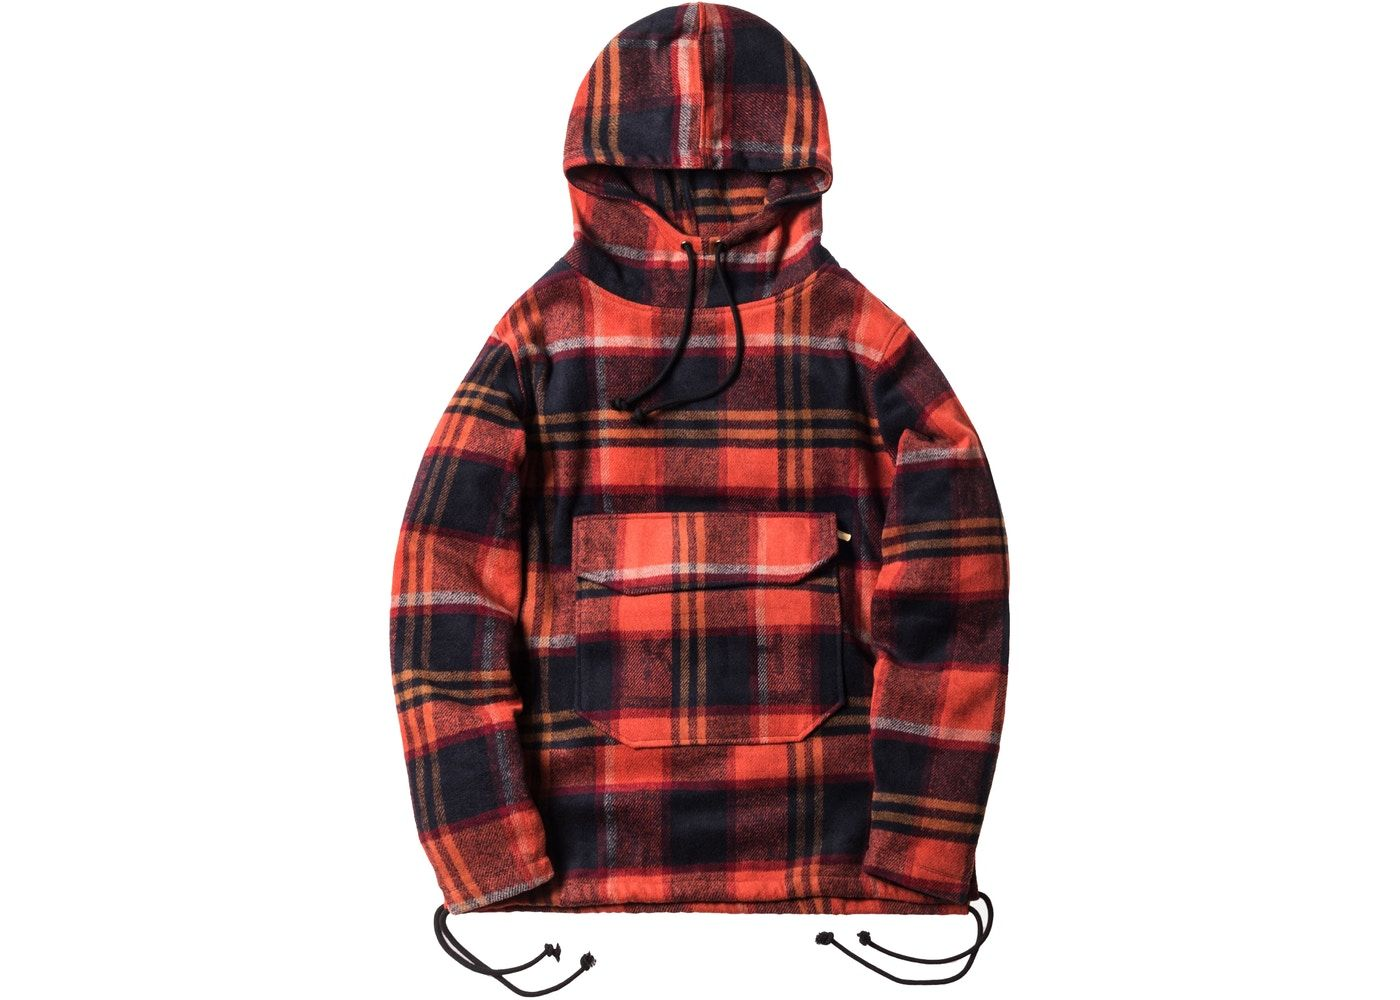 b4b5a83b Kith Harrison Plaid Flannel Hoodie Orange/Red | Apparel in 2019 ...